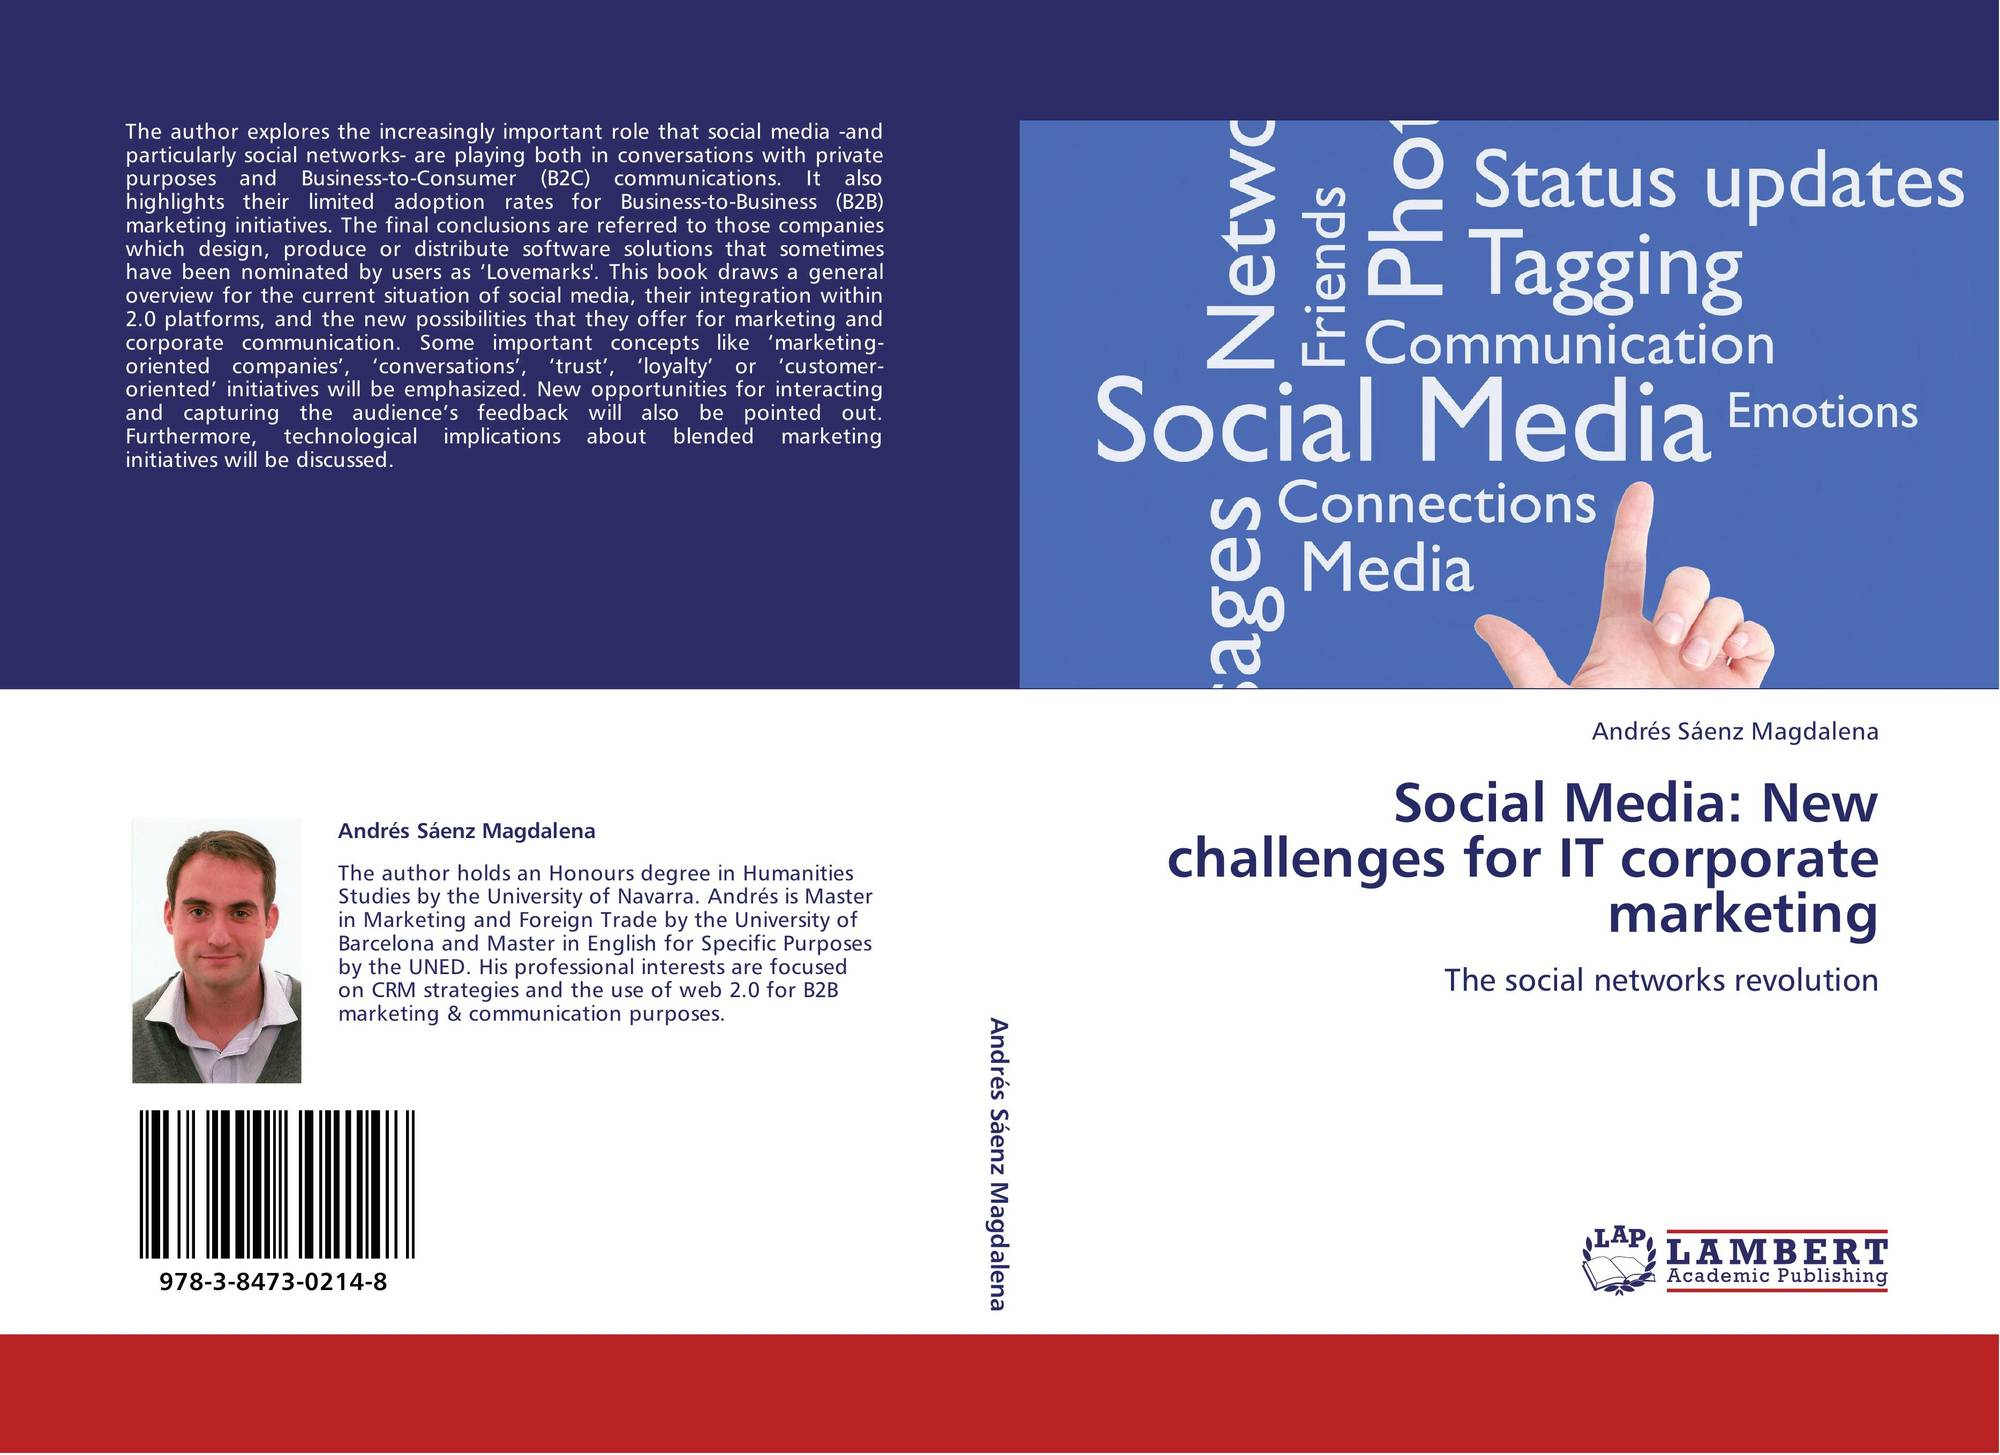 social media and its challenges on A key thought leader will bring the audience to a road beyond the basics of social media and its platforms while providing an in-depth analysis of the current trends and issues involving this significant topic.